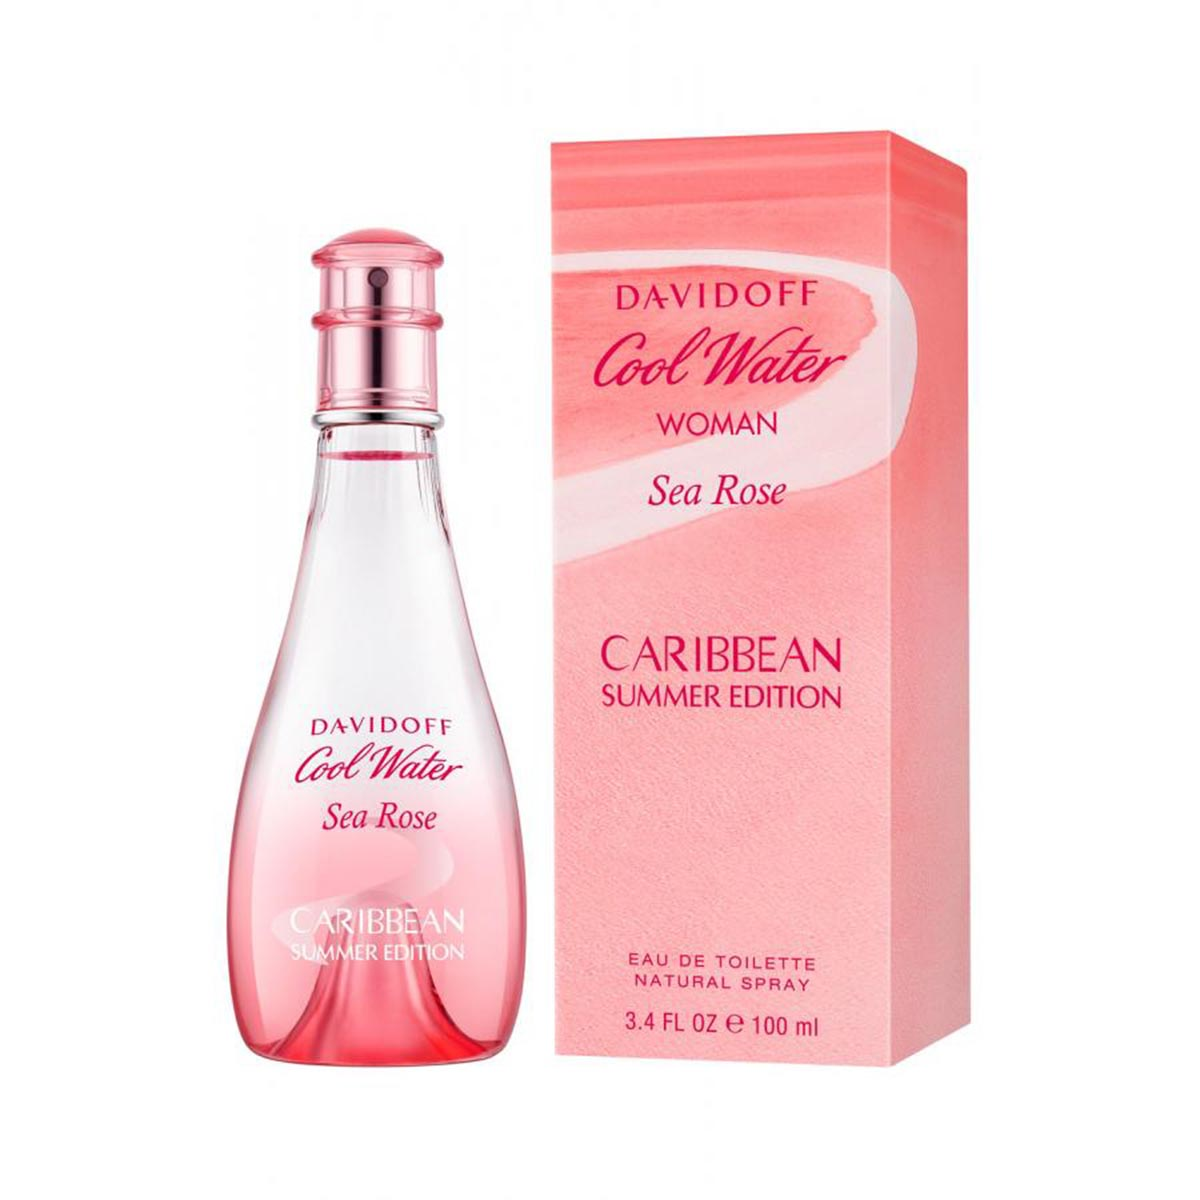 Davidoff cool water woman sea rose caribbean summer edition eau de toilette 100ml vaporizador